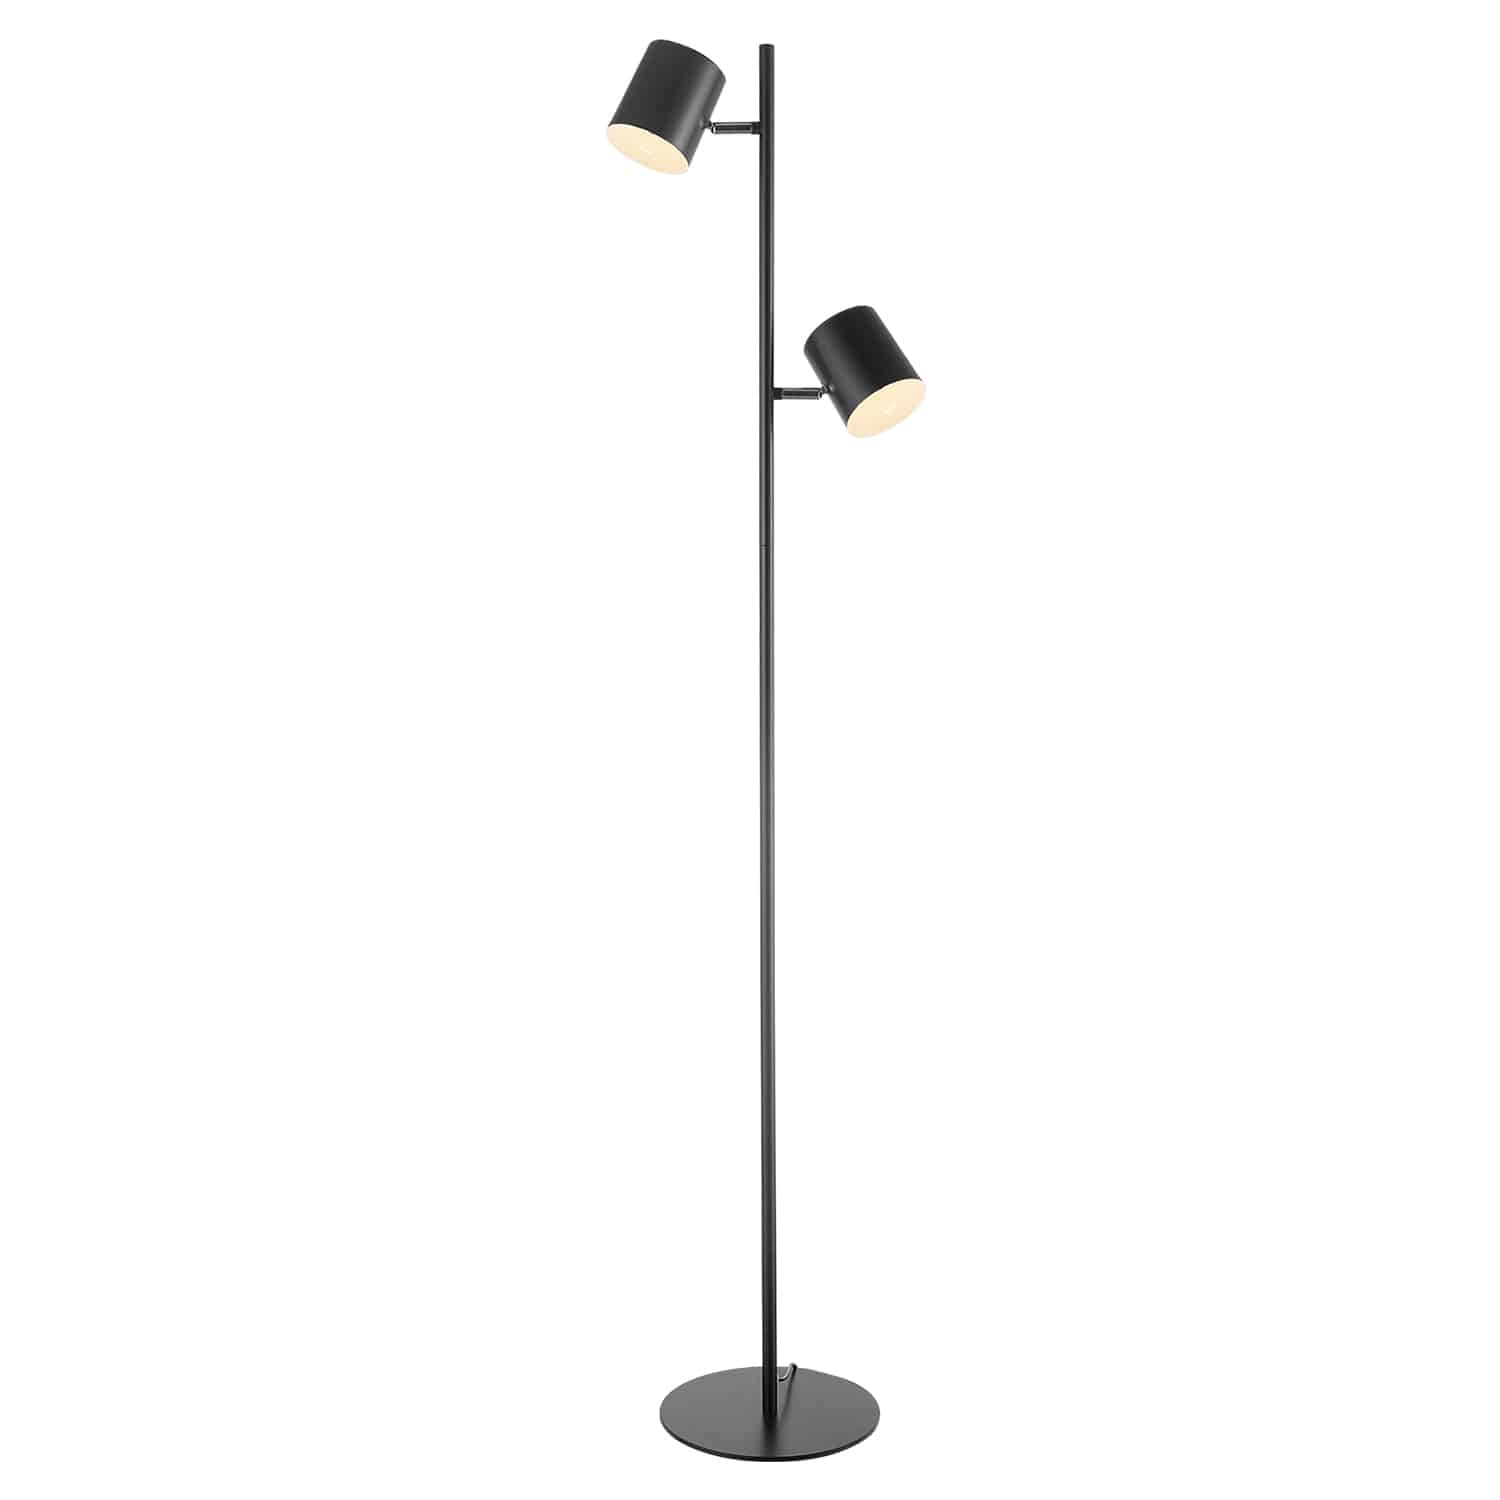 A black metal floor lamp with two swivel lights.